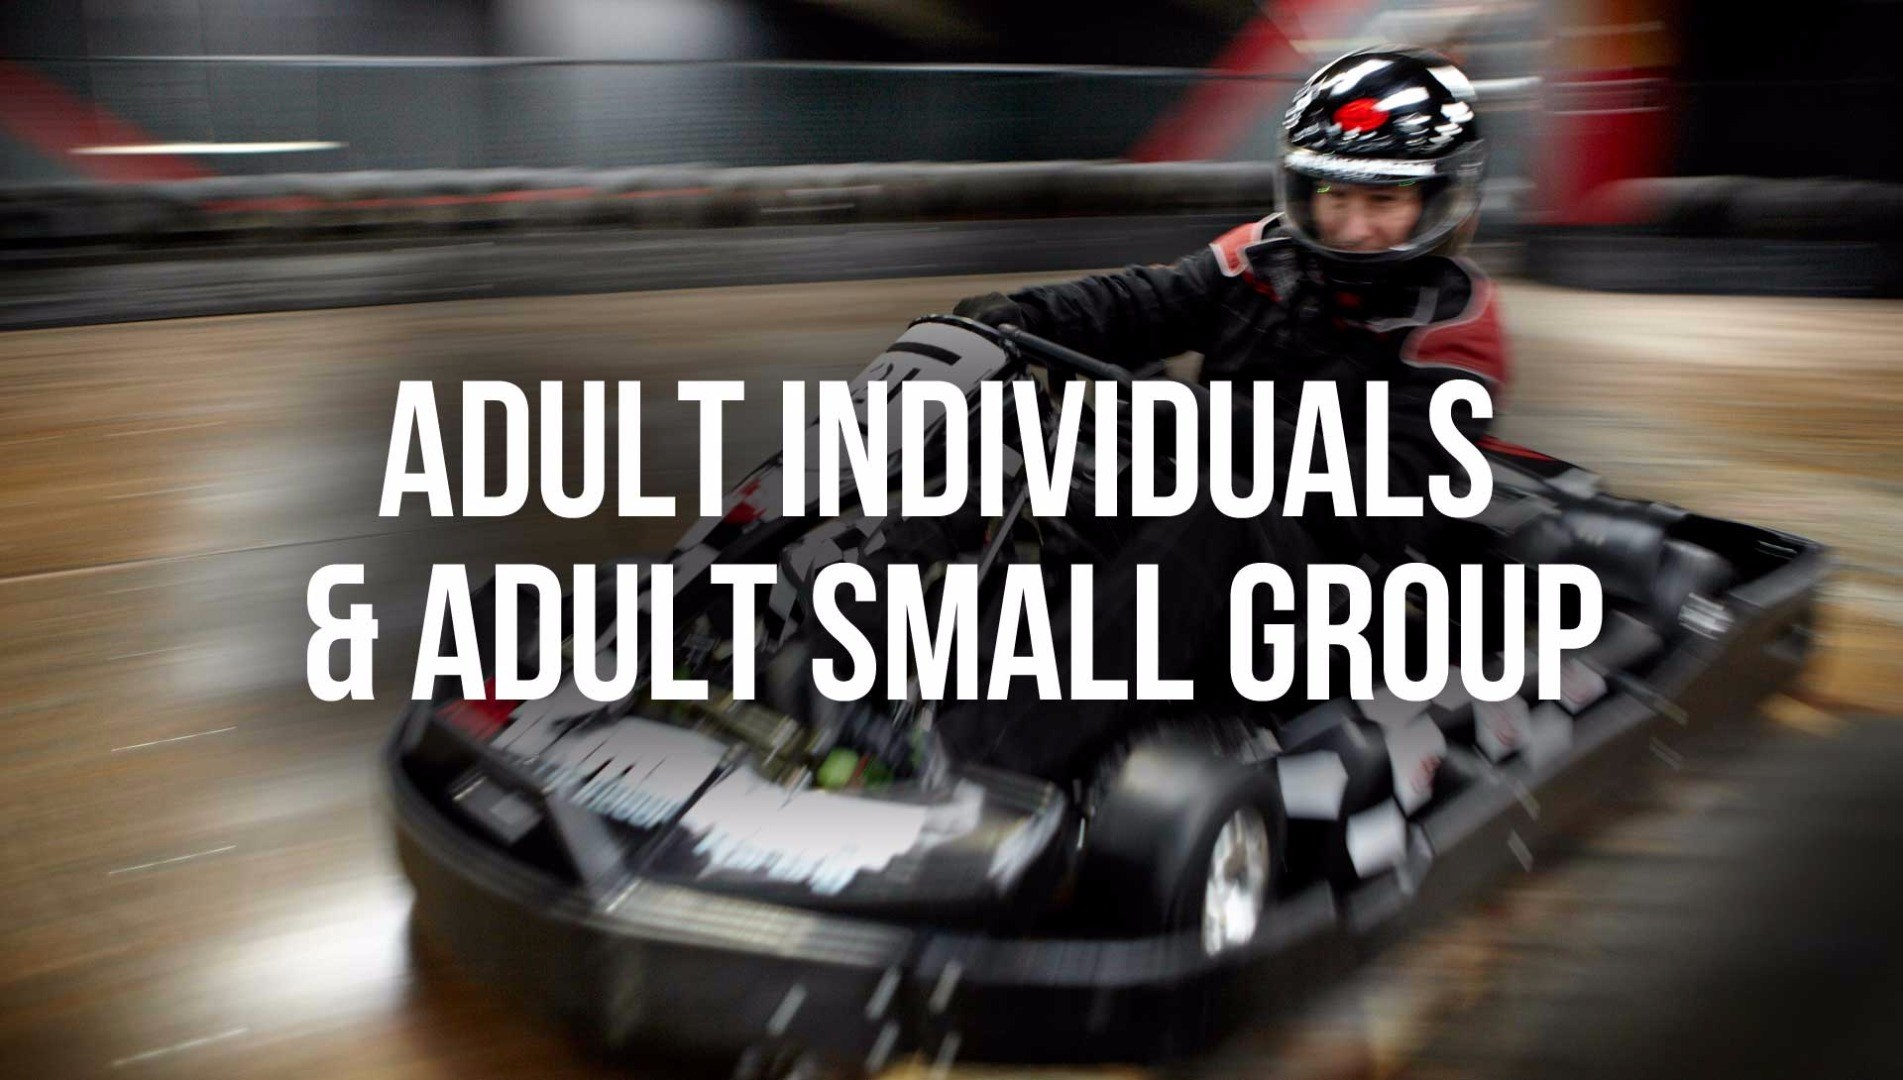 Adult Individuals & Adult Small Groups